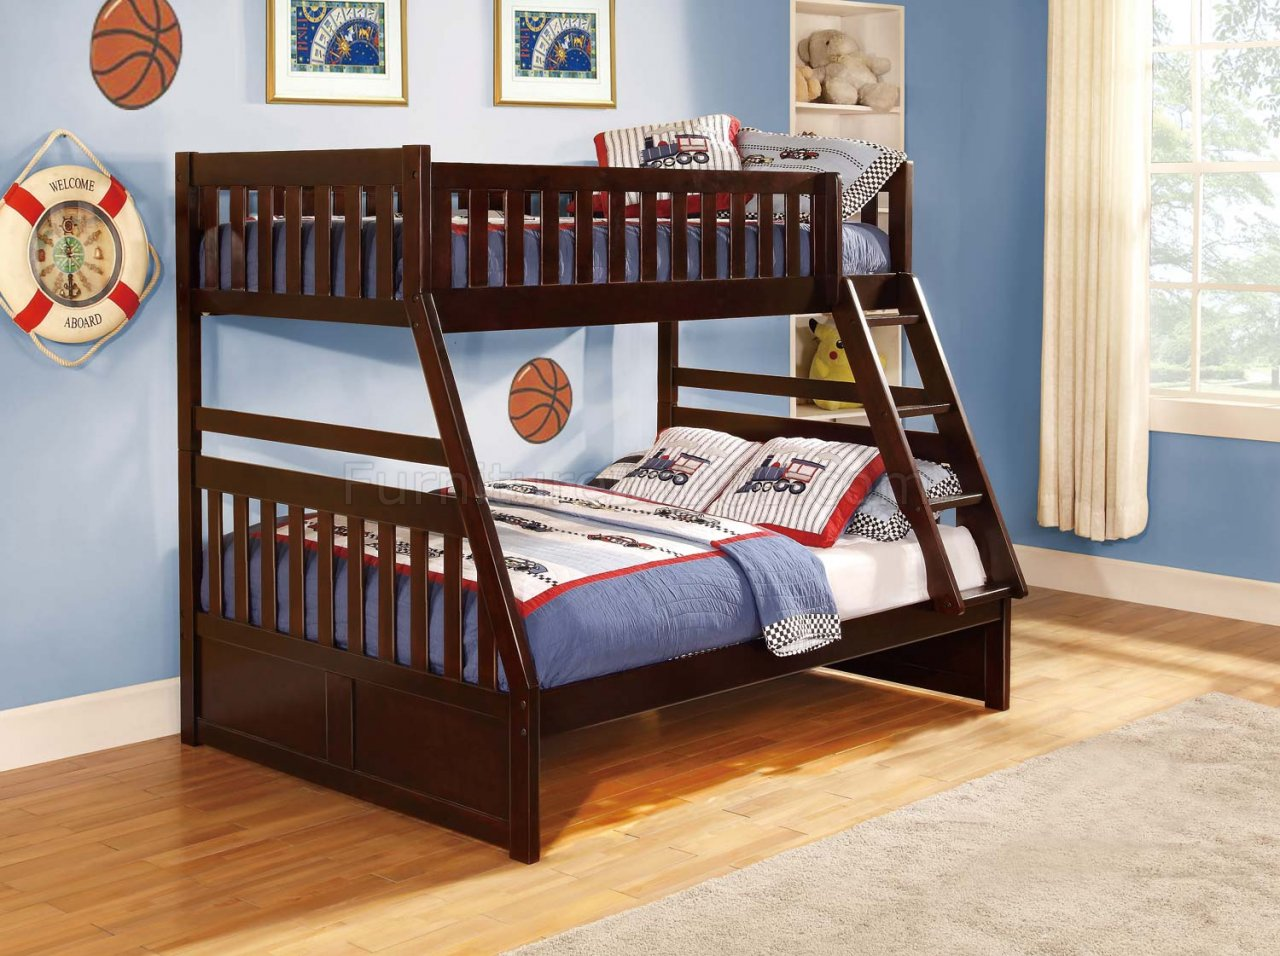 Rowe TwinFull Bunk Bed B2013 in Dark Cherry by Homelegance